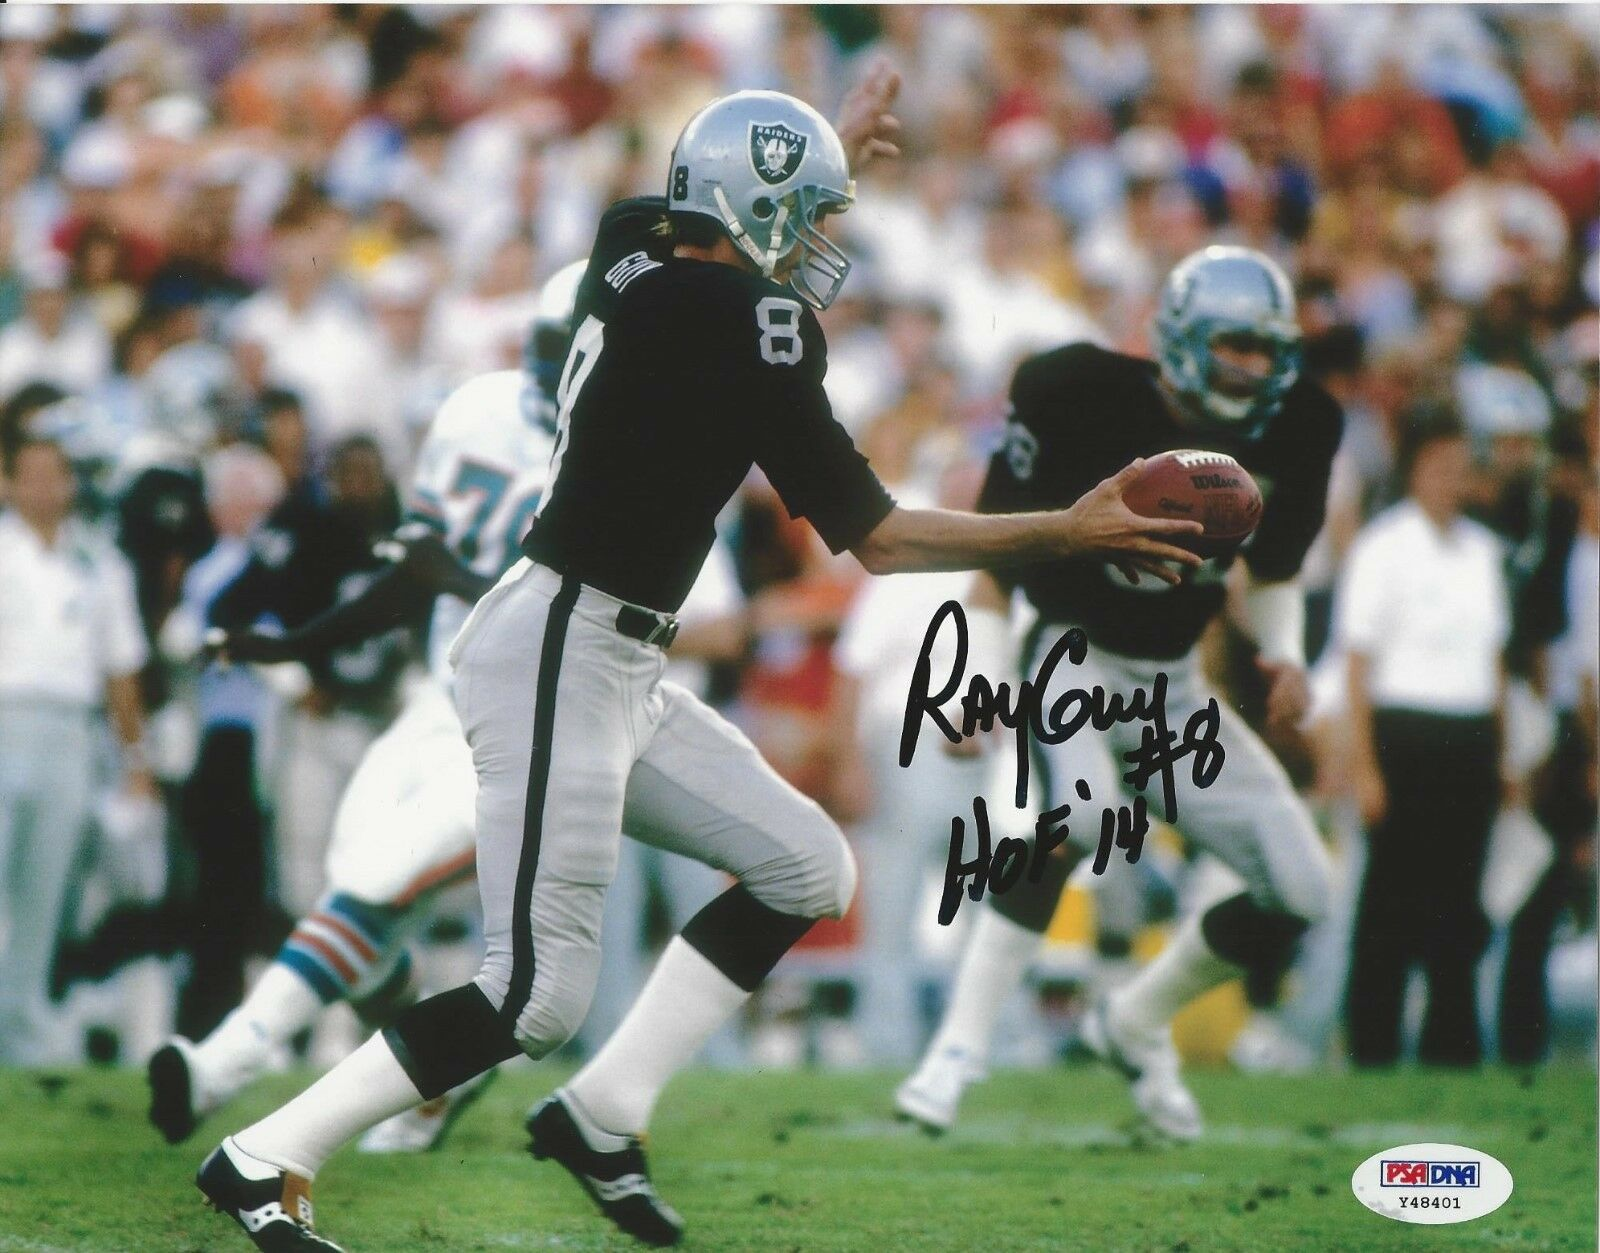 Ray Guy Oakland Raiders signed 8x10 Photo PSA/DNA # Y48401